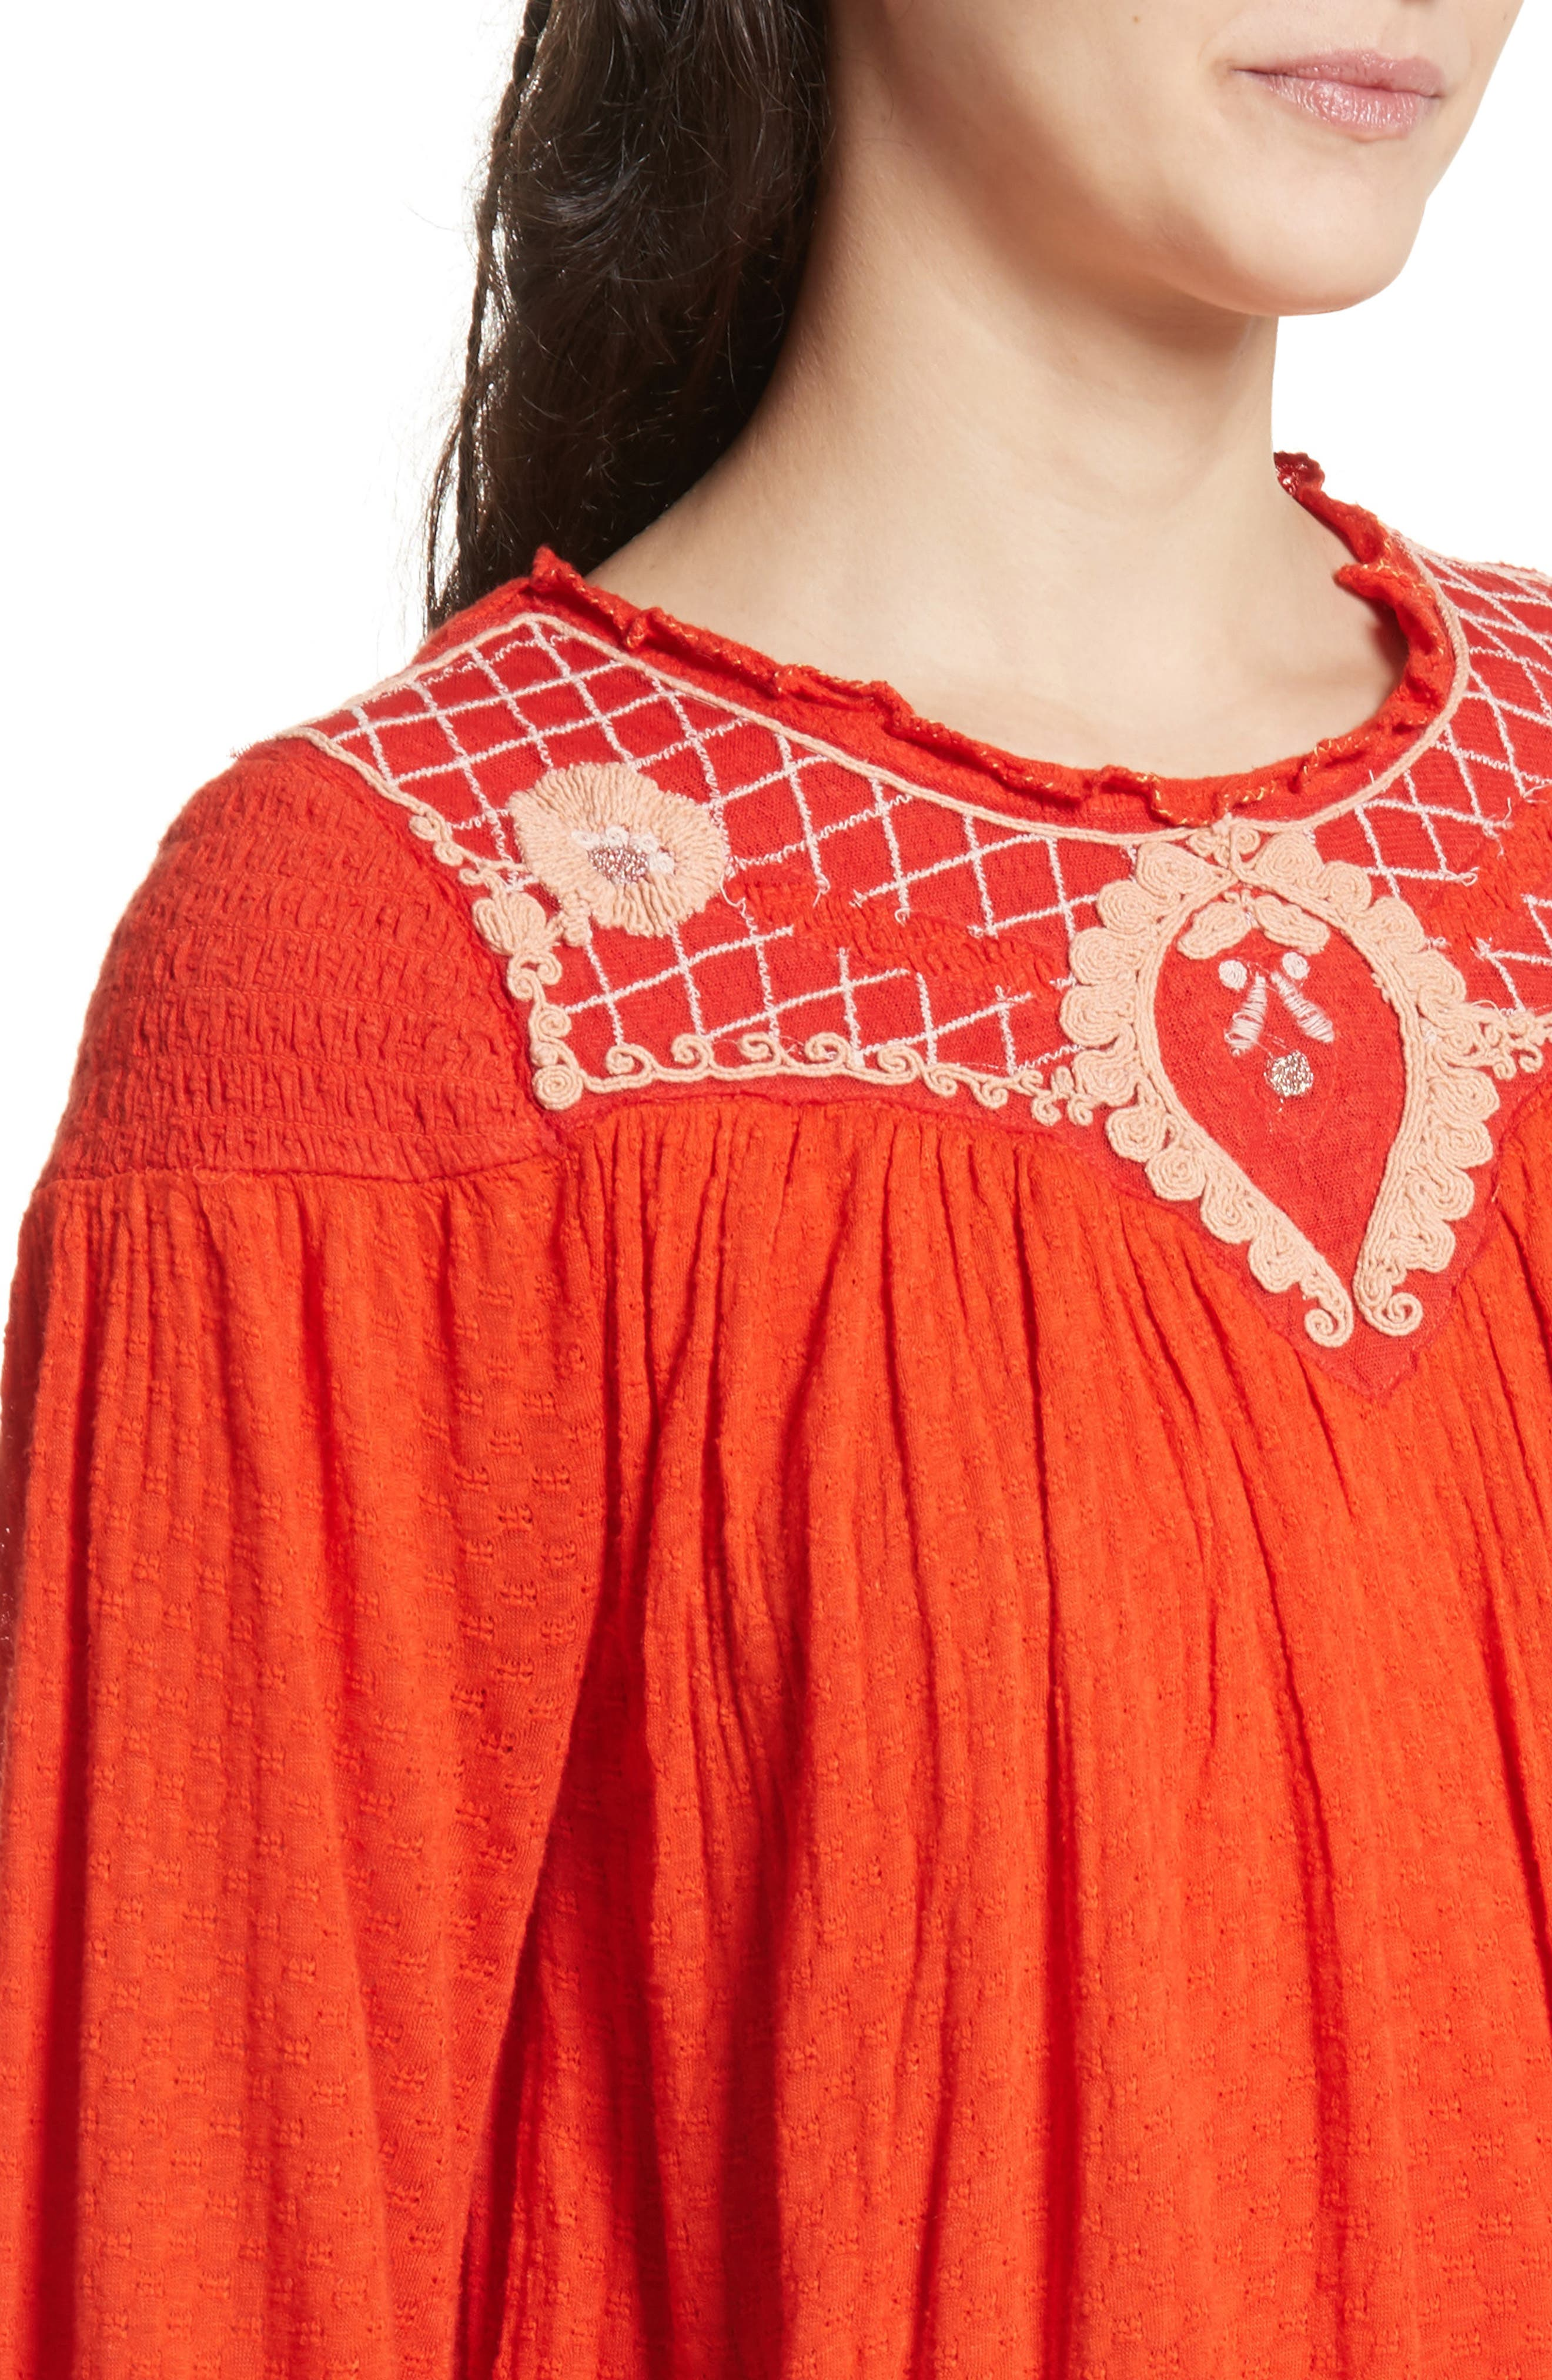 Begonia Top,                             Alternate thumbnail 4, color,                             Red